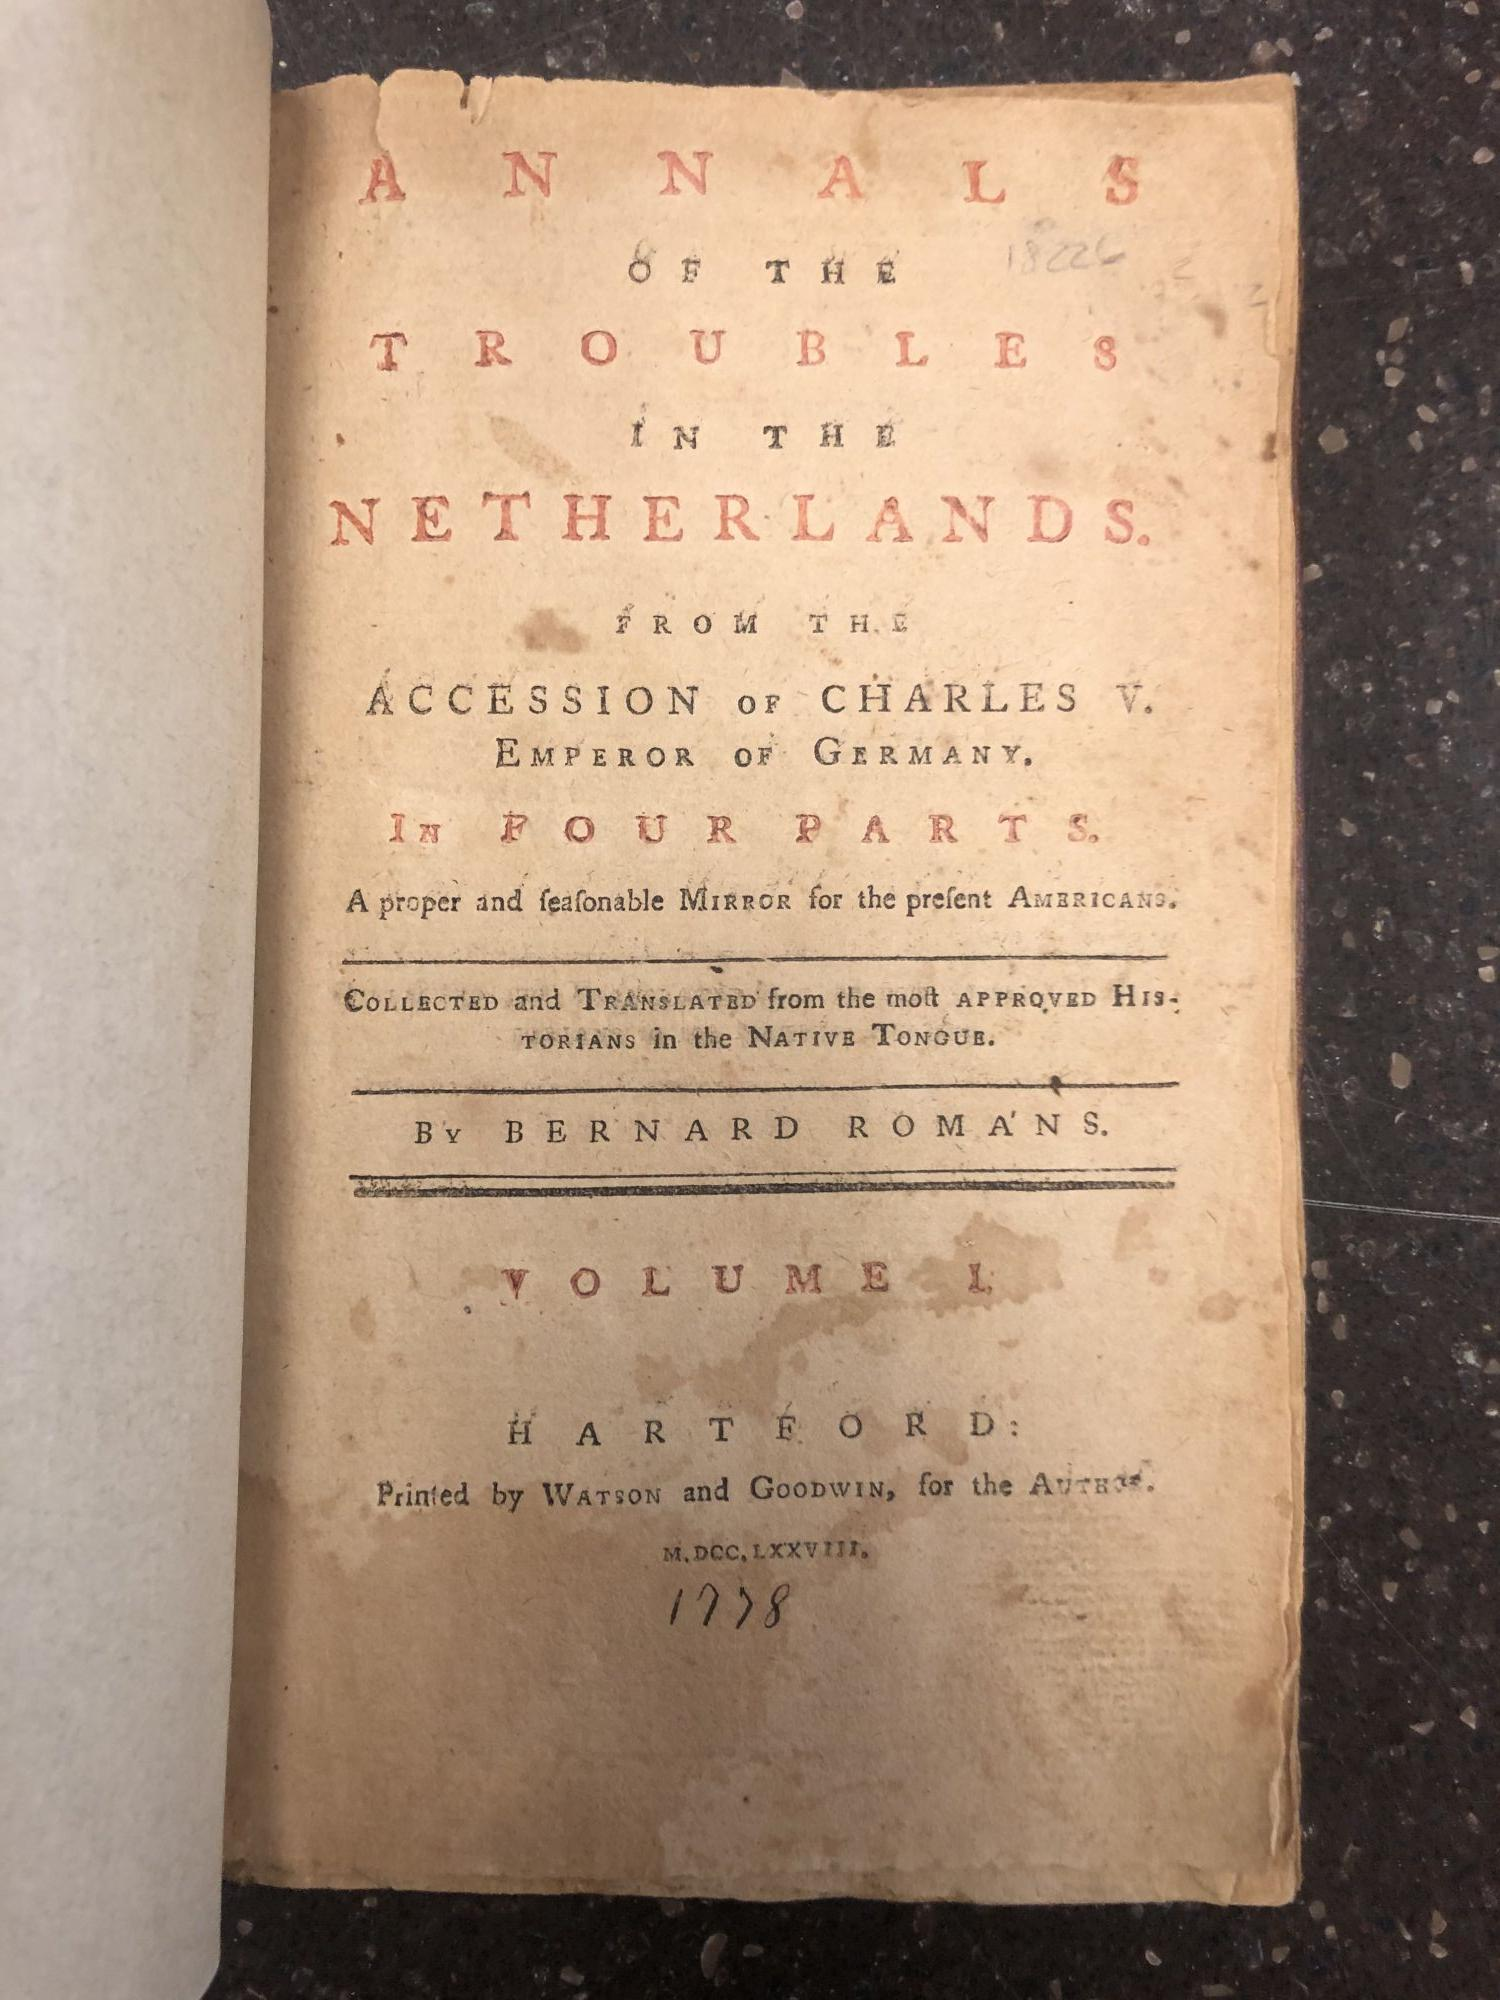 ANNALS OF THE TROUBLES IN THE NETHERLANDS. FROM THE ACCESSION OF CHARLES V. EMPEROR OF GERMANY. IN FOUR PARTS. A PROPER AND SEASONABLE MIRROR FOR THE PRESENT AMERICANS. [VOLUME ONE ONLY]. Bernard Romans.